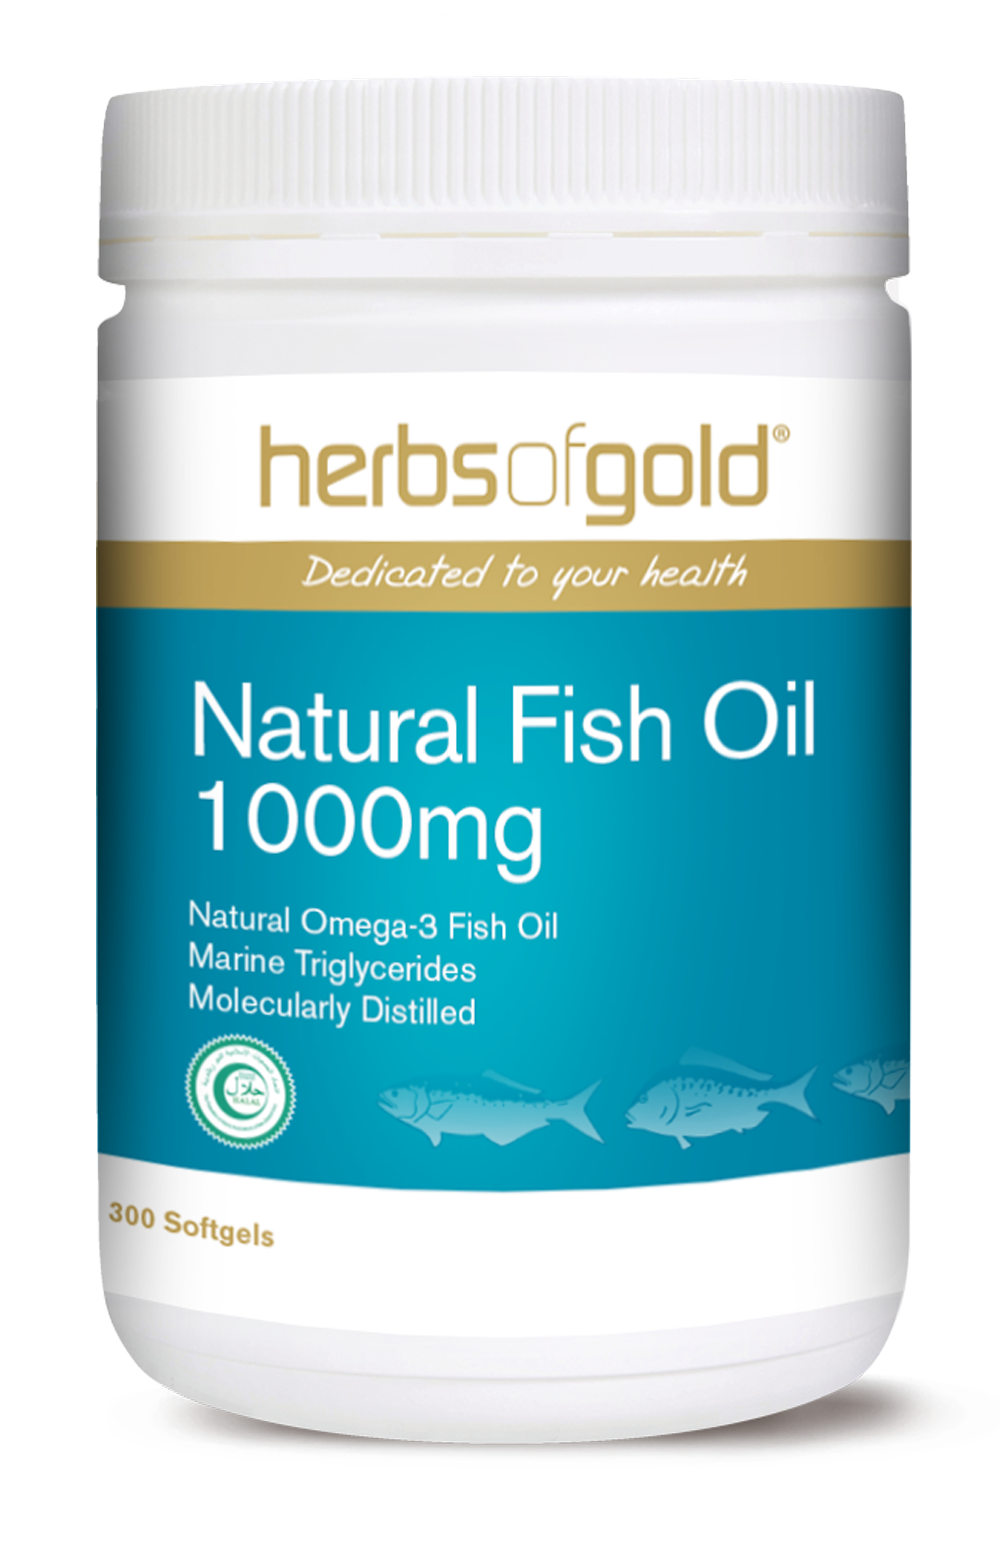 Natural Fish Oil 1000mg